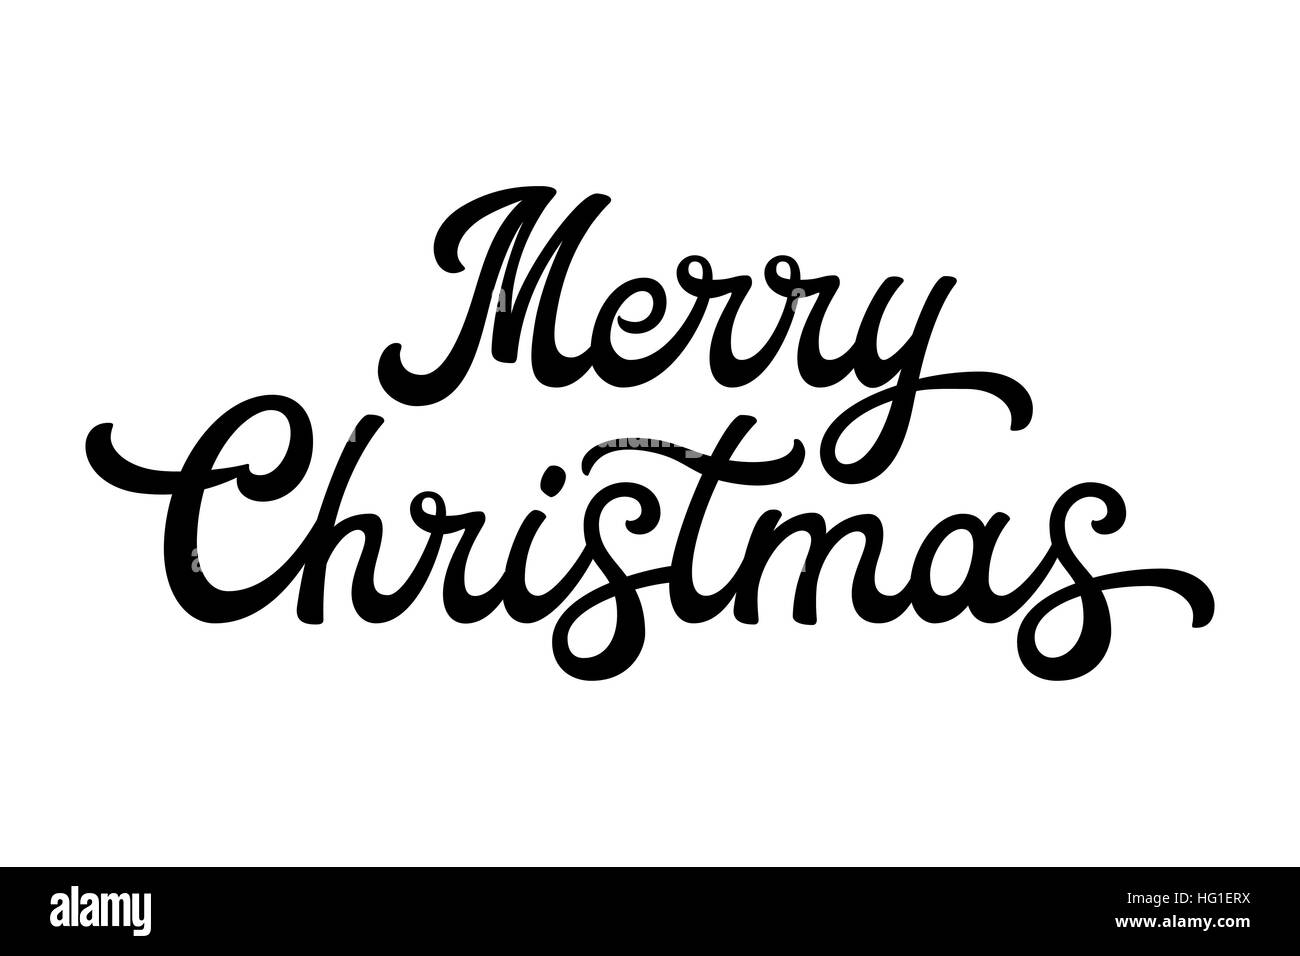 Merry Christmas Brush Lettering Black Letters Isolated On